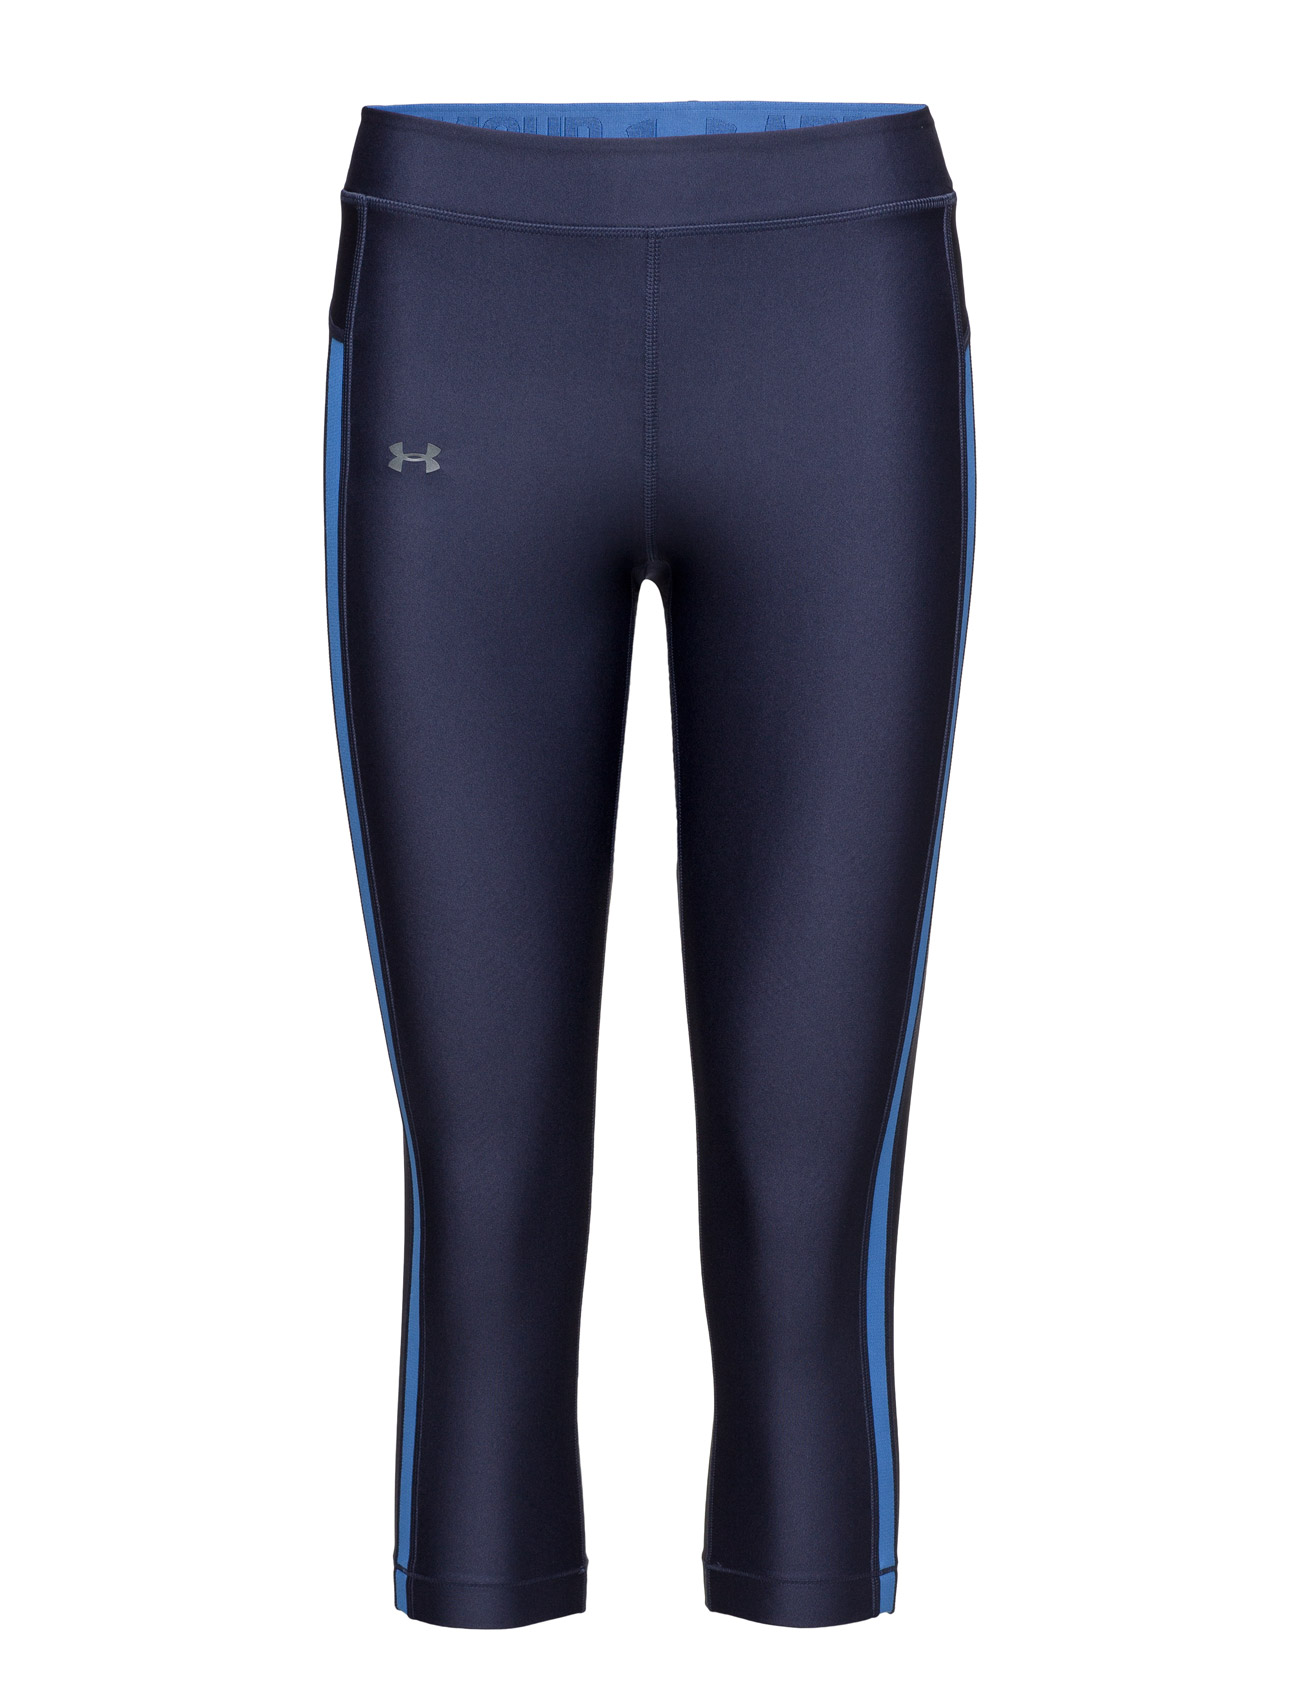 Ua Hg Armr Coolswitch Capri Under Armour Trænings leggings til Damer i